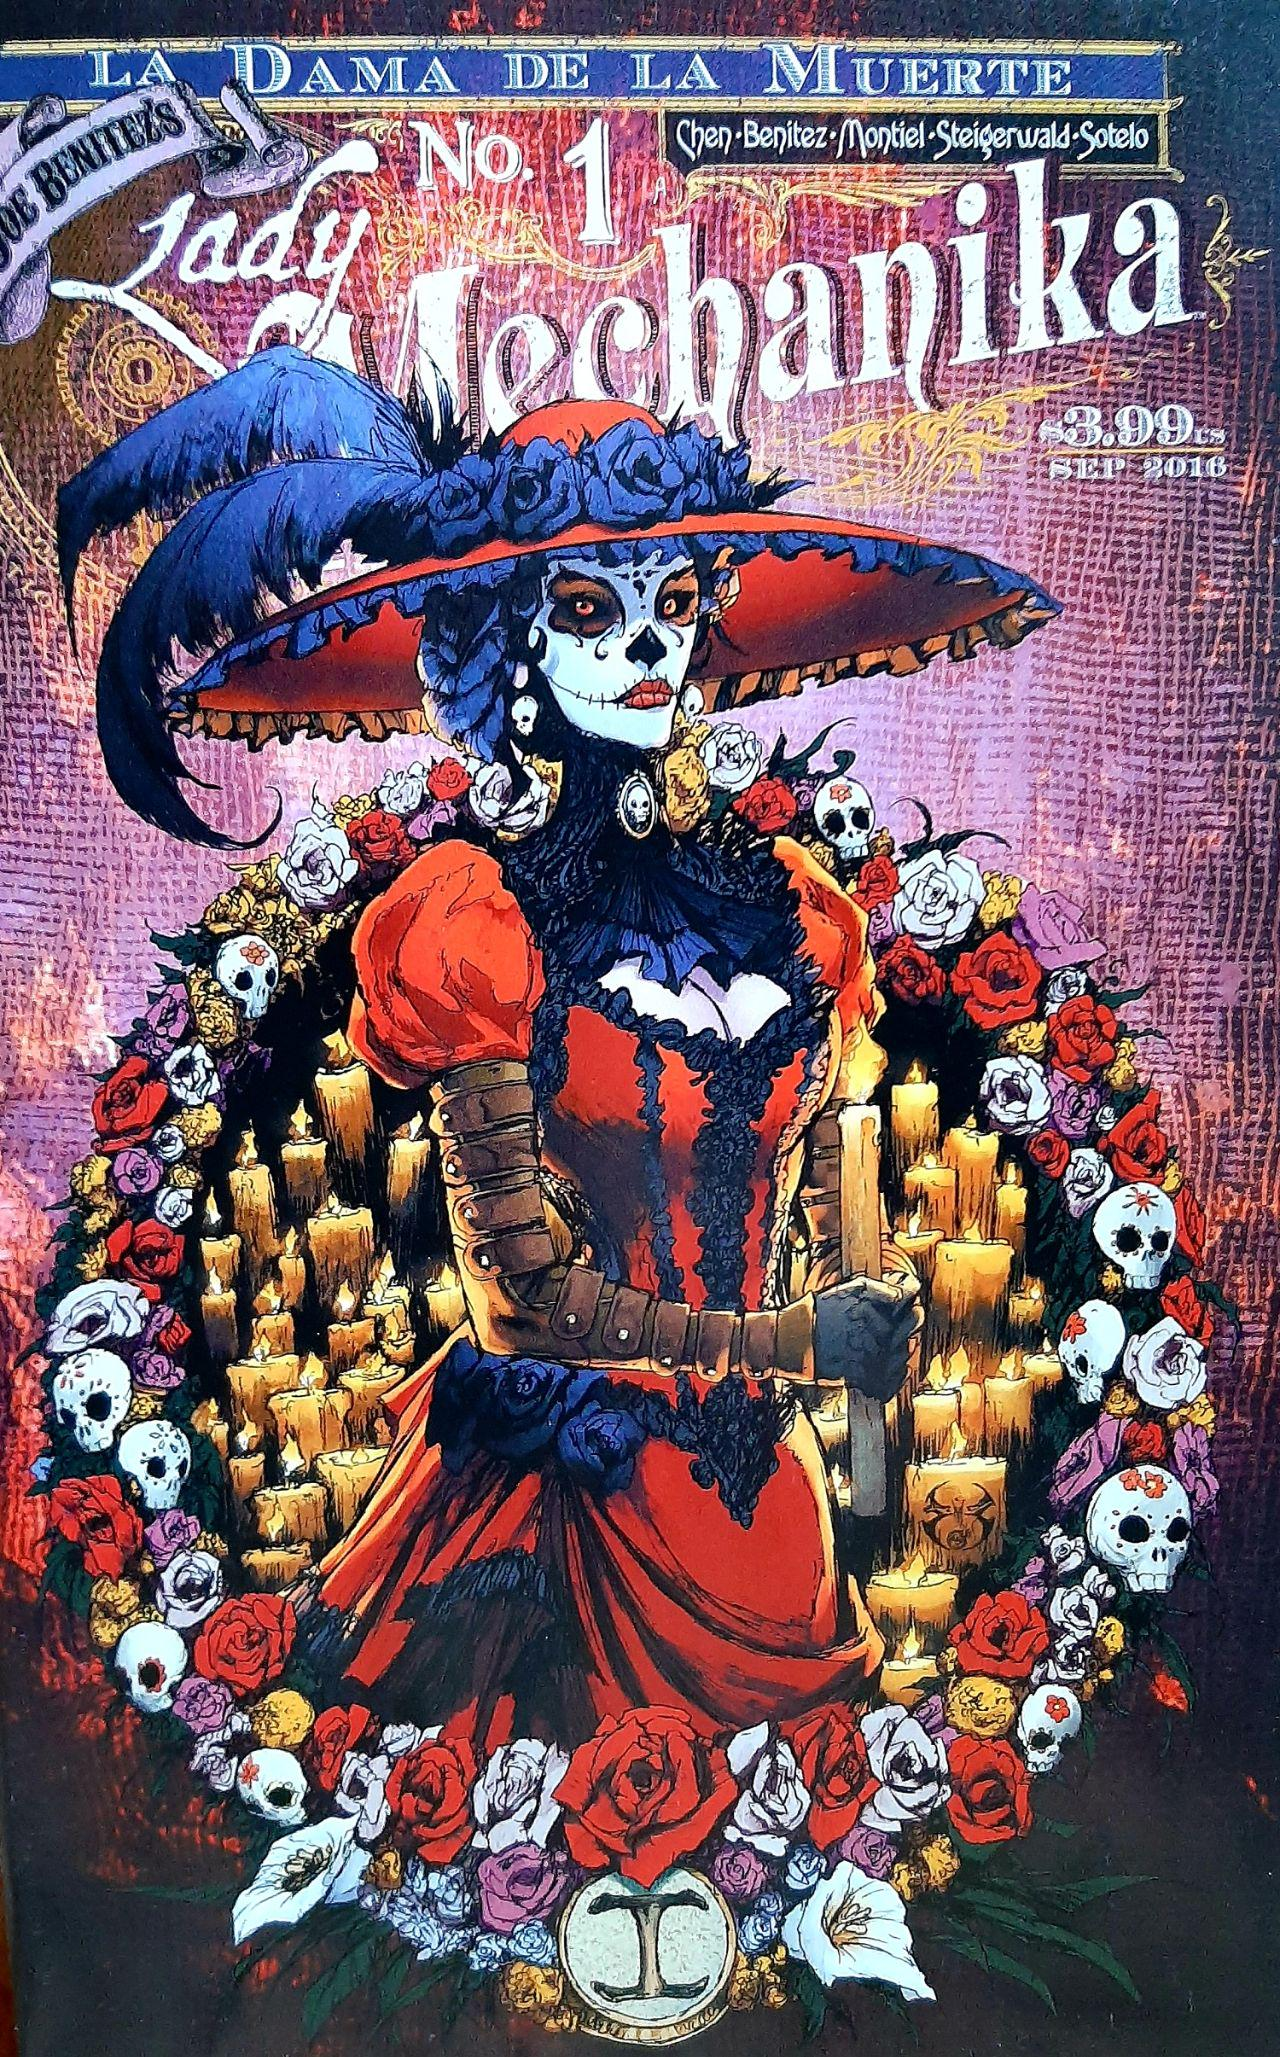 Couverture Lady Mechanika La Dama de la muerte